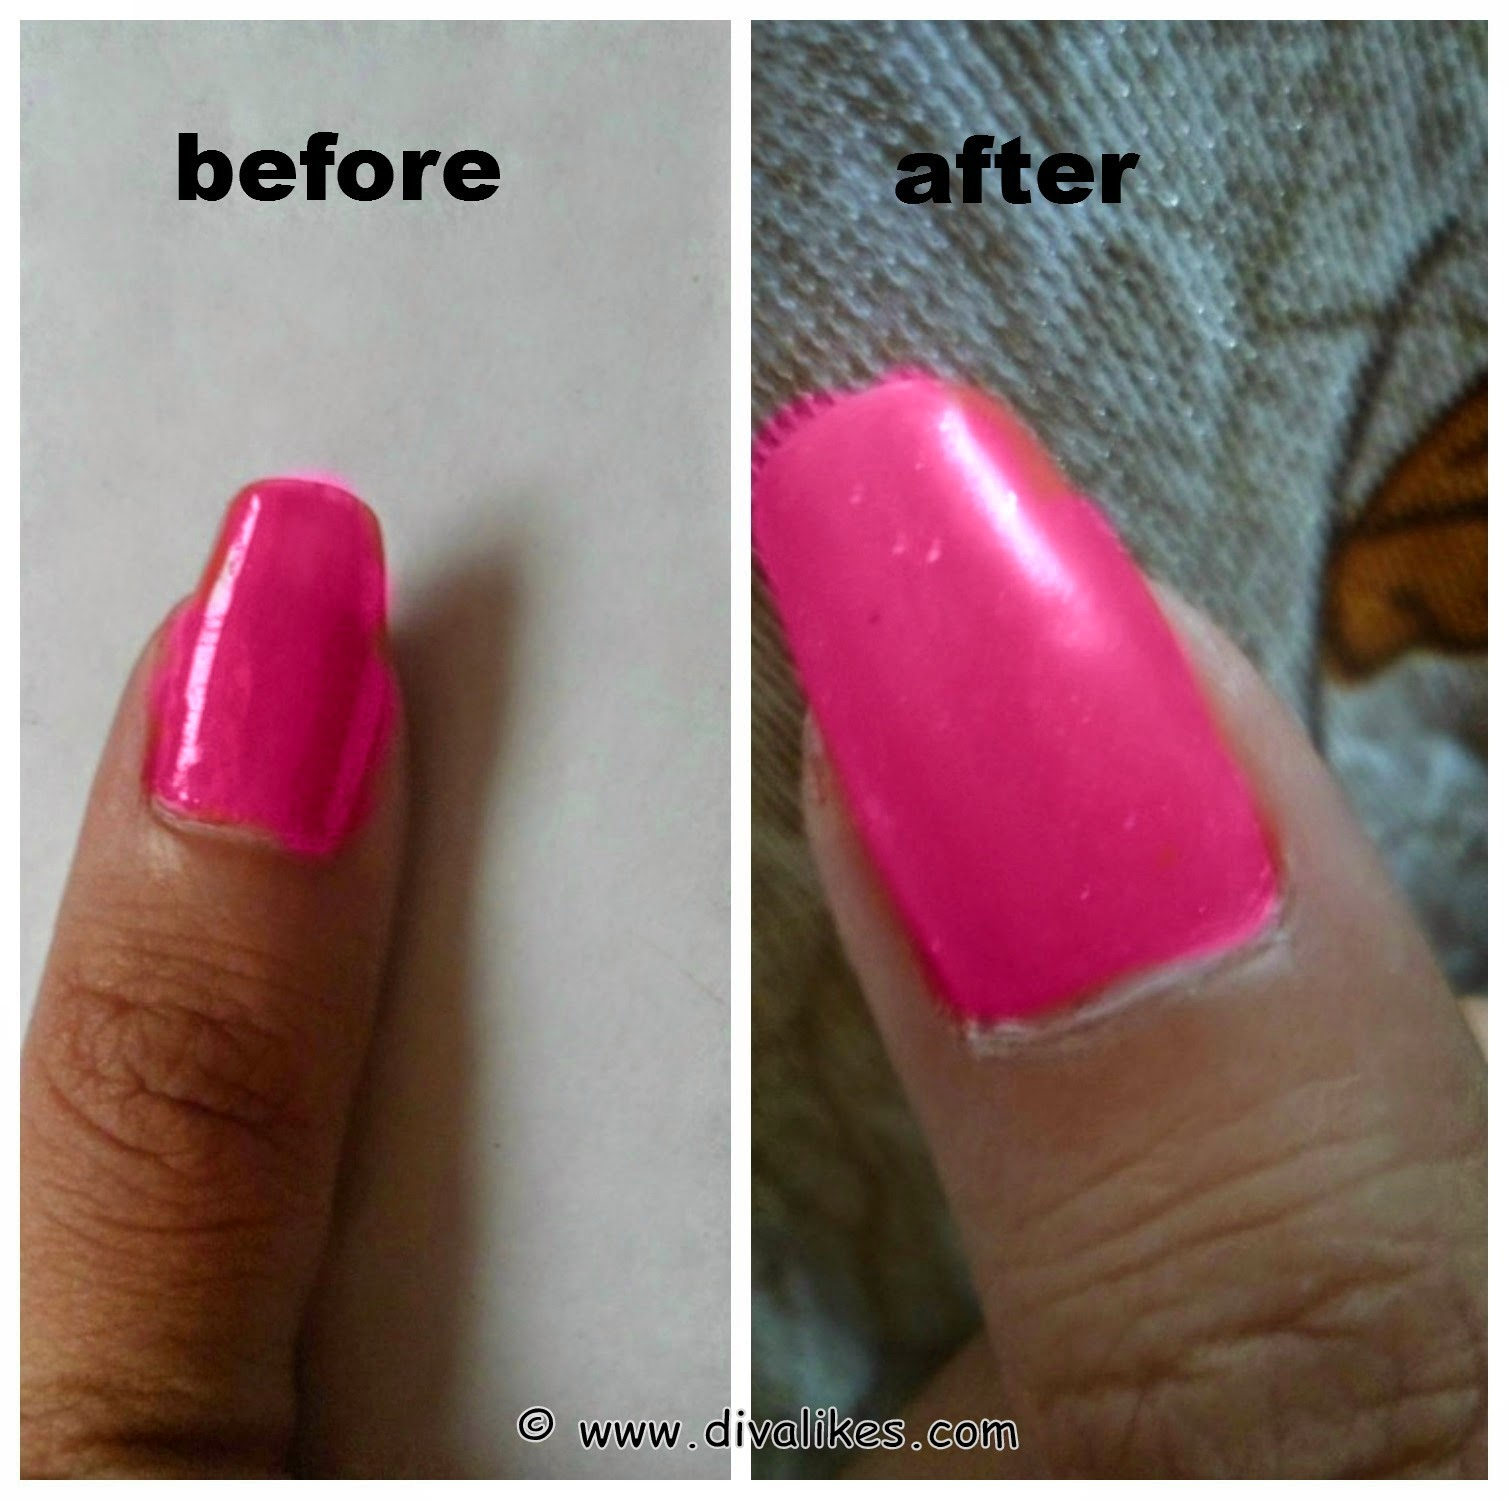 Diy how to make matte top coat for nails diva likes this trick can give a regular nail color with a matte finish just by applying a matte top coat prepared all by yourself solutioingenieria Image collections